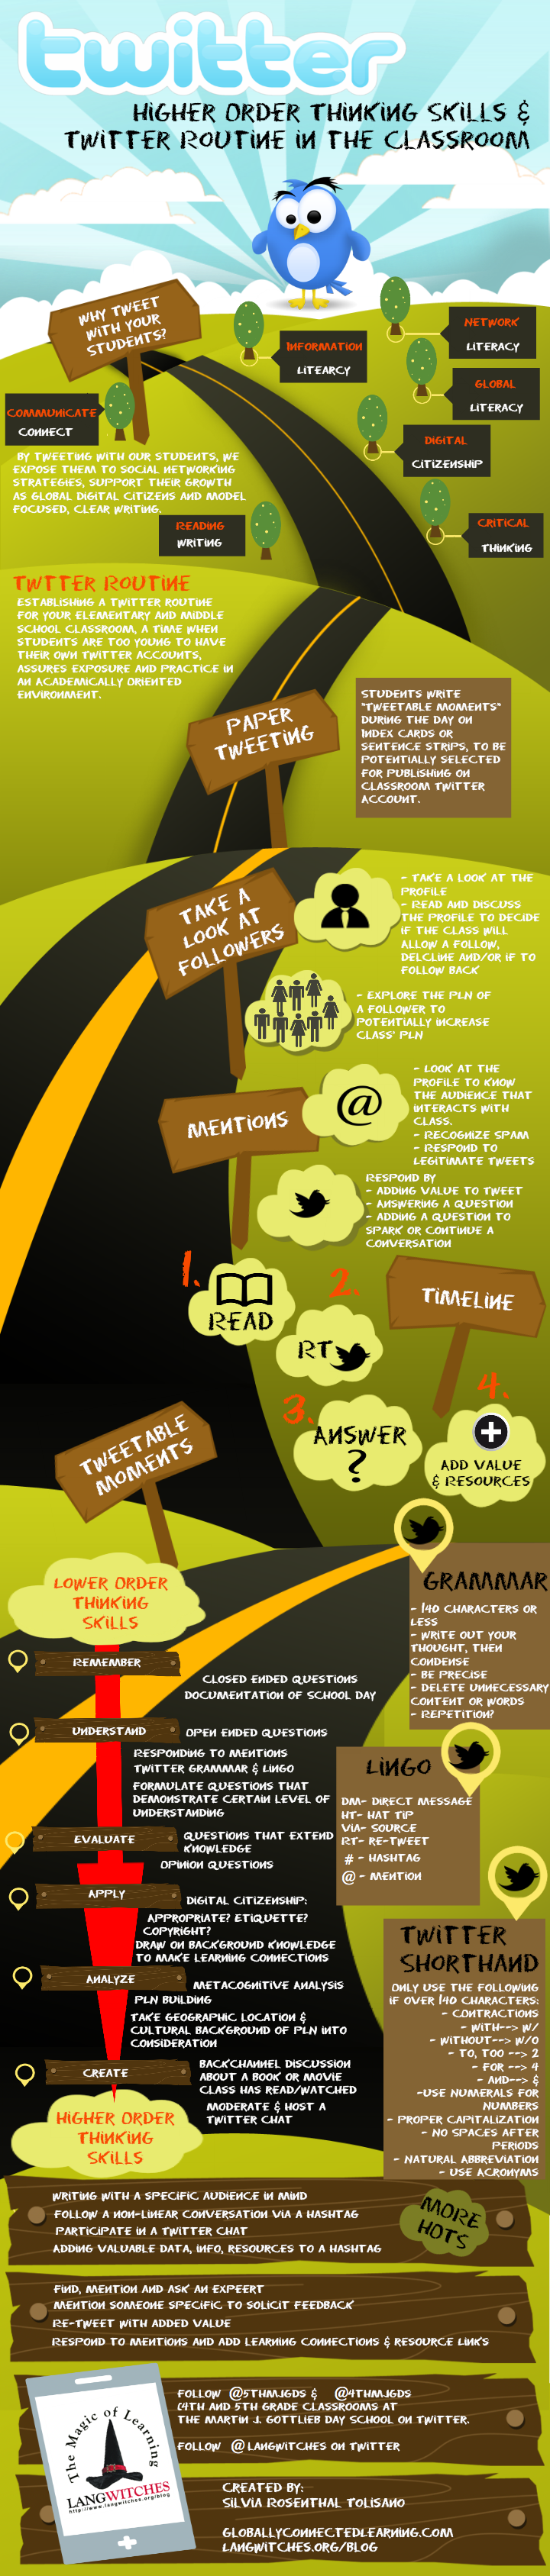 Twitter higher order thinking skills & Twitter routine in the classroom #infographic